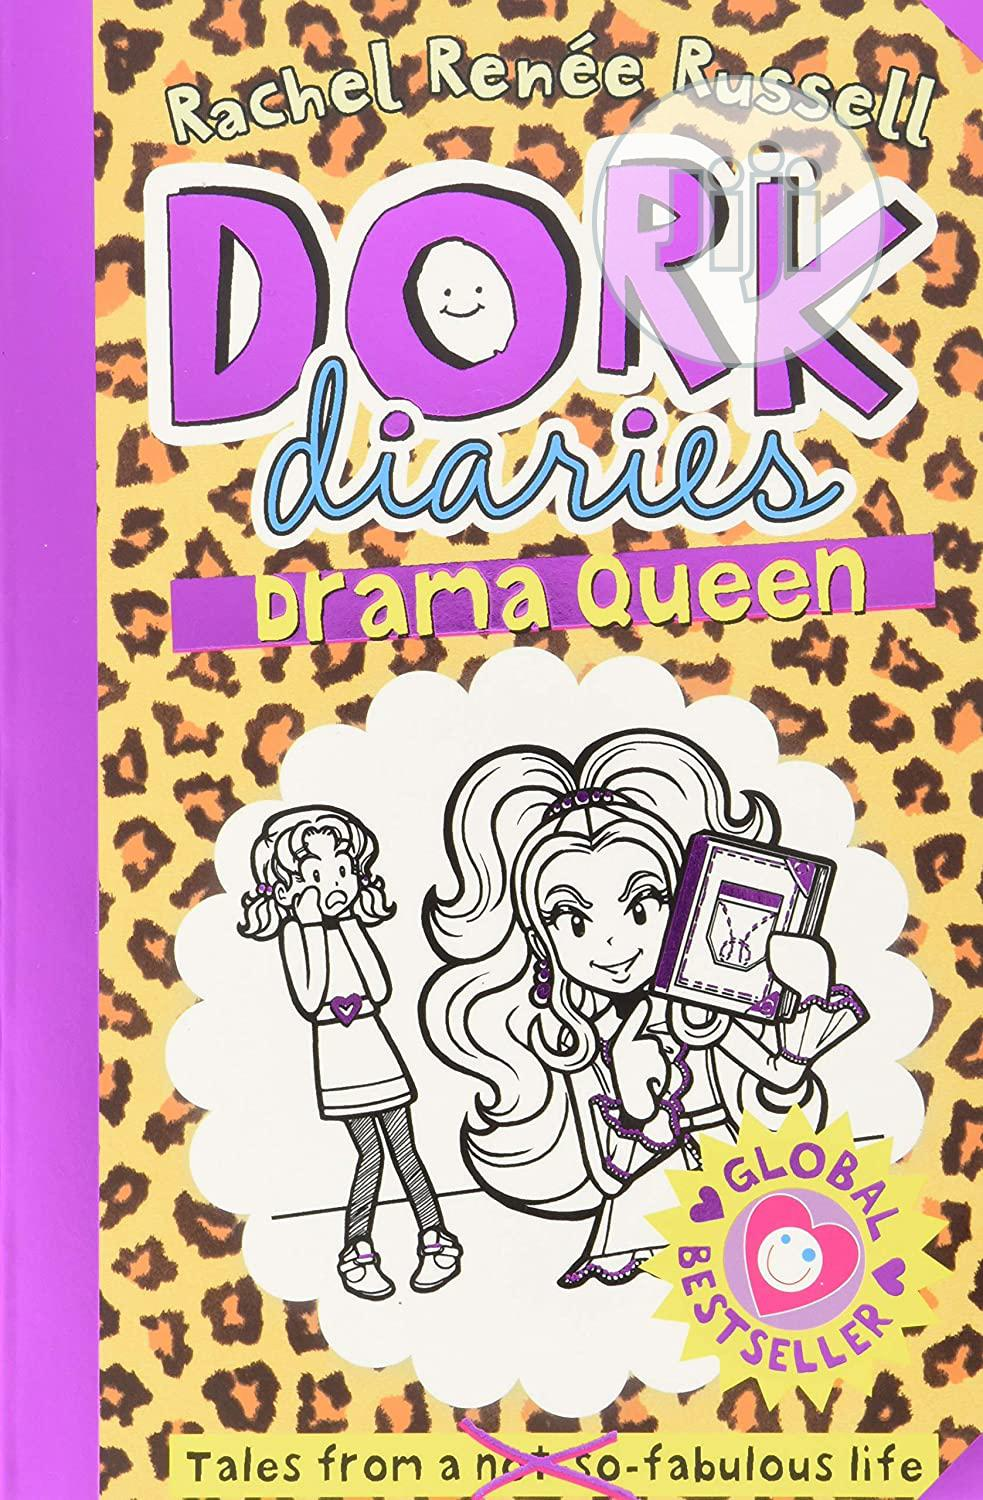 Dork Diaries Book 10: Drama Queen by Rachel Renee Russell